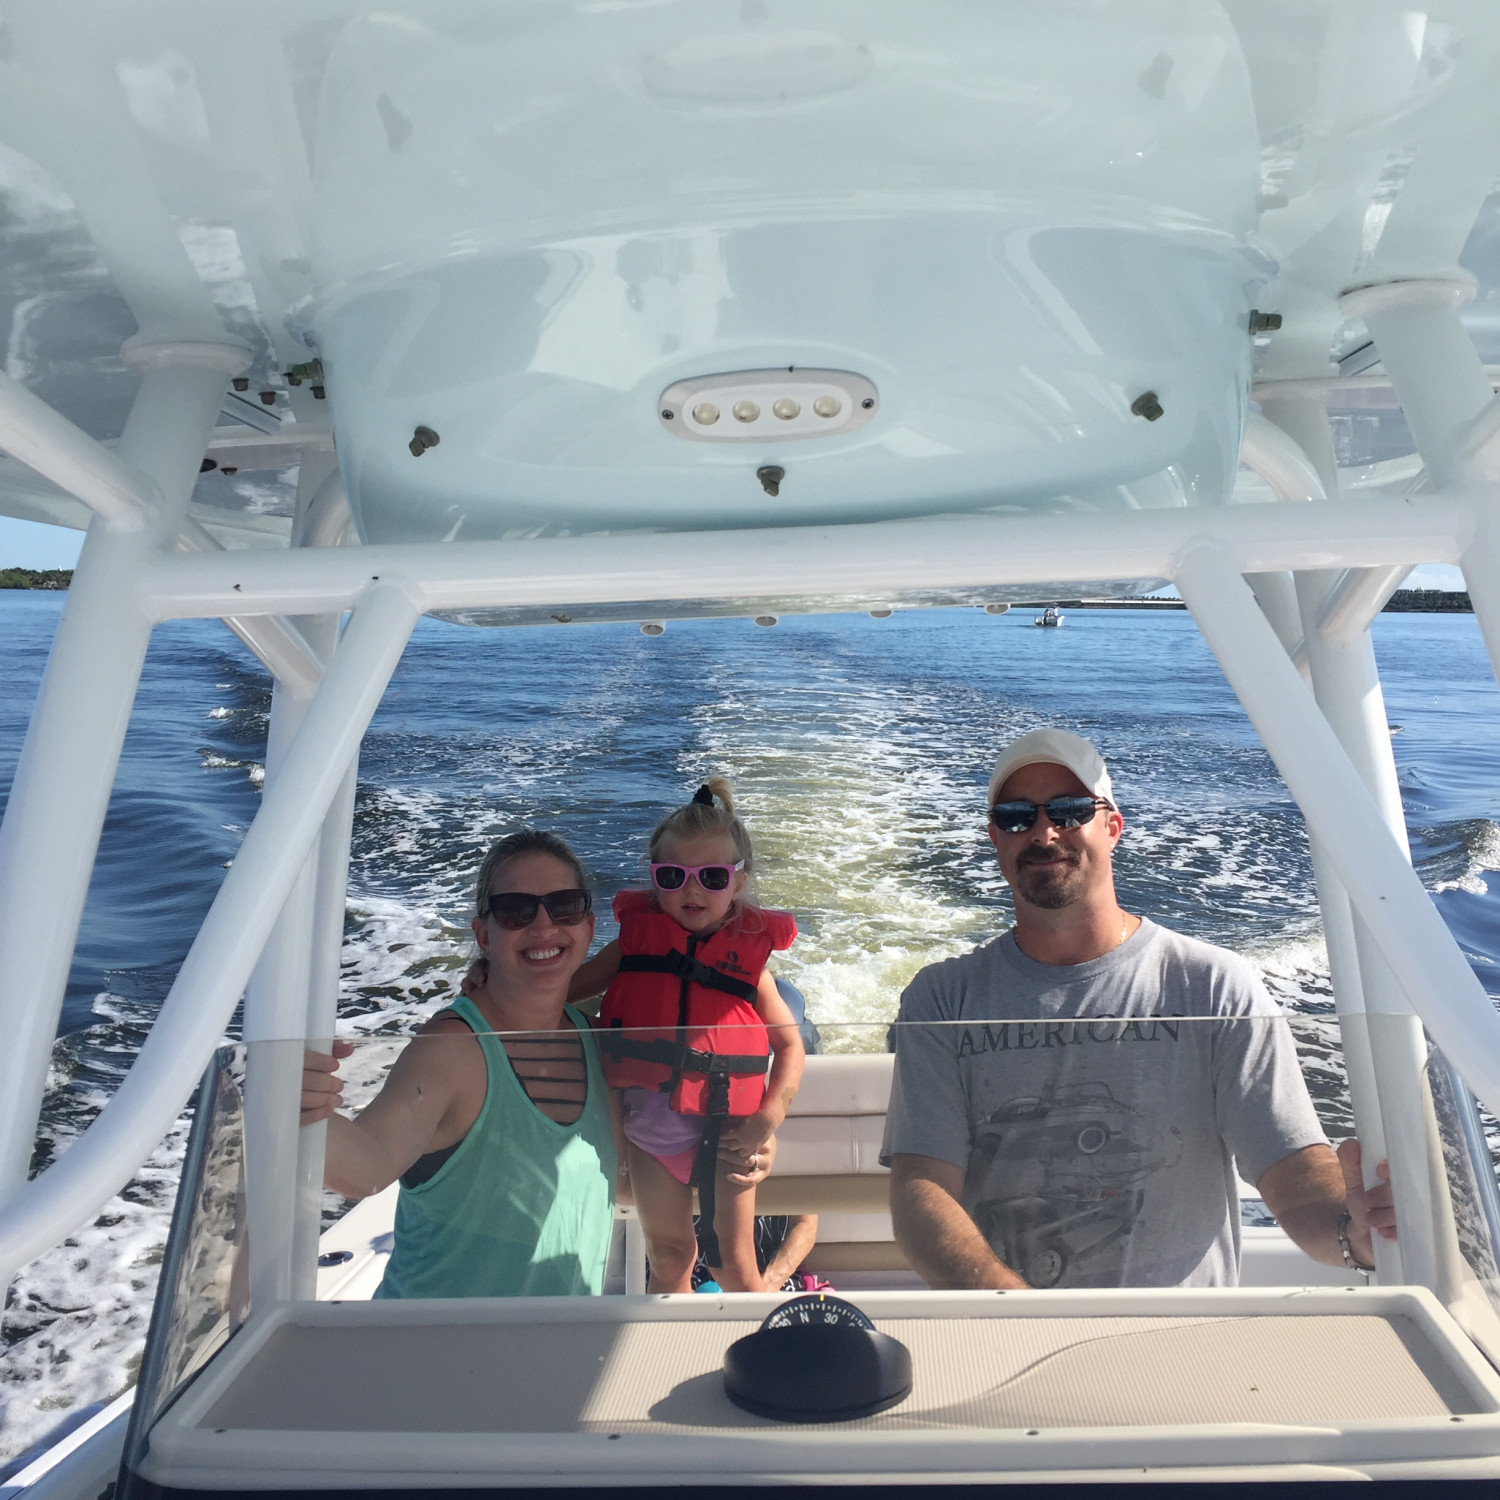 Title: Family time! - On board their Sportsman Heritage 251 Center Console - Location: Palm beach shores, FL. Participating in the Photo Contest #SportsmanNovember2017